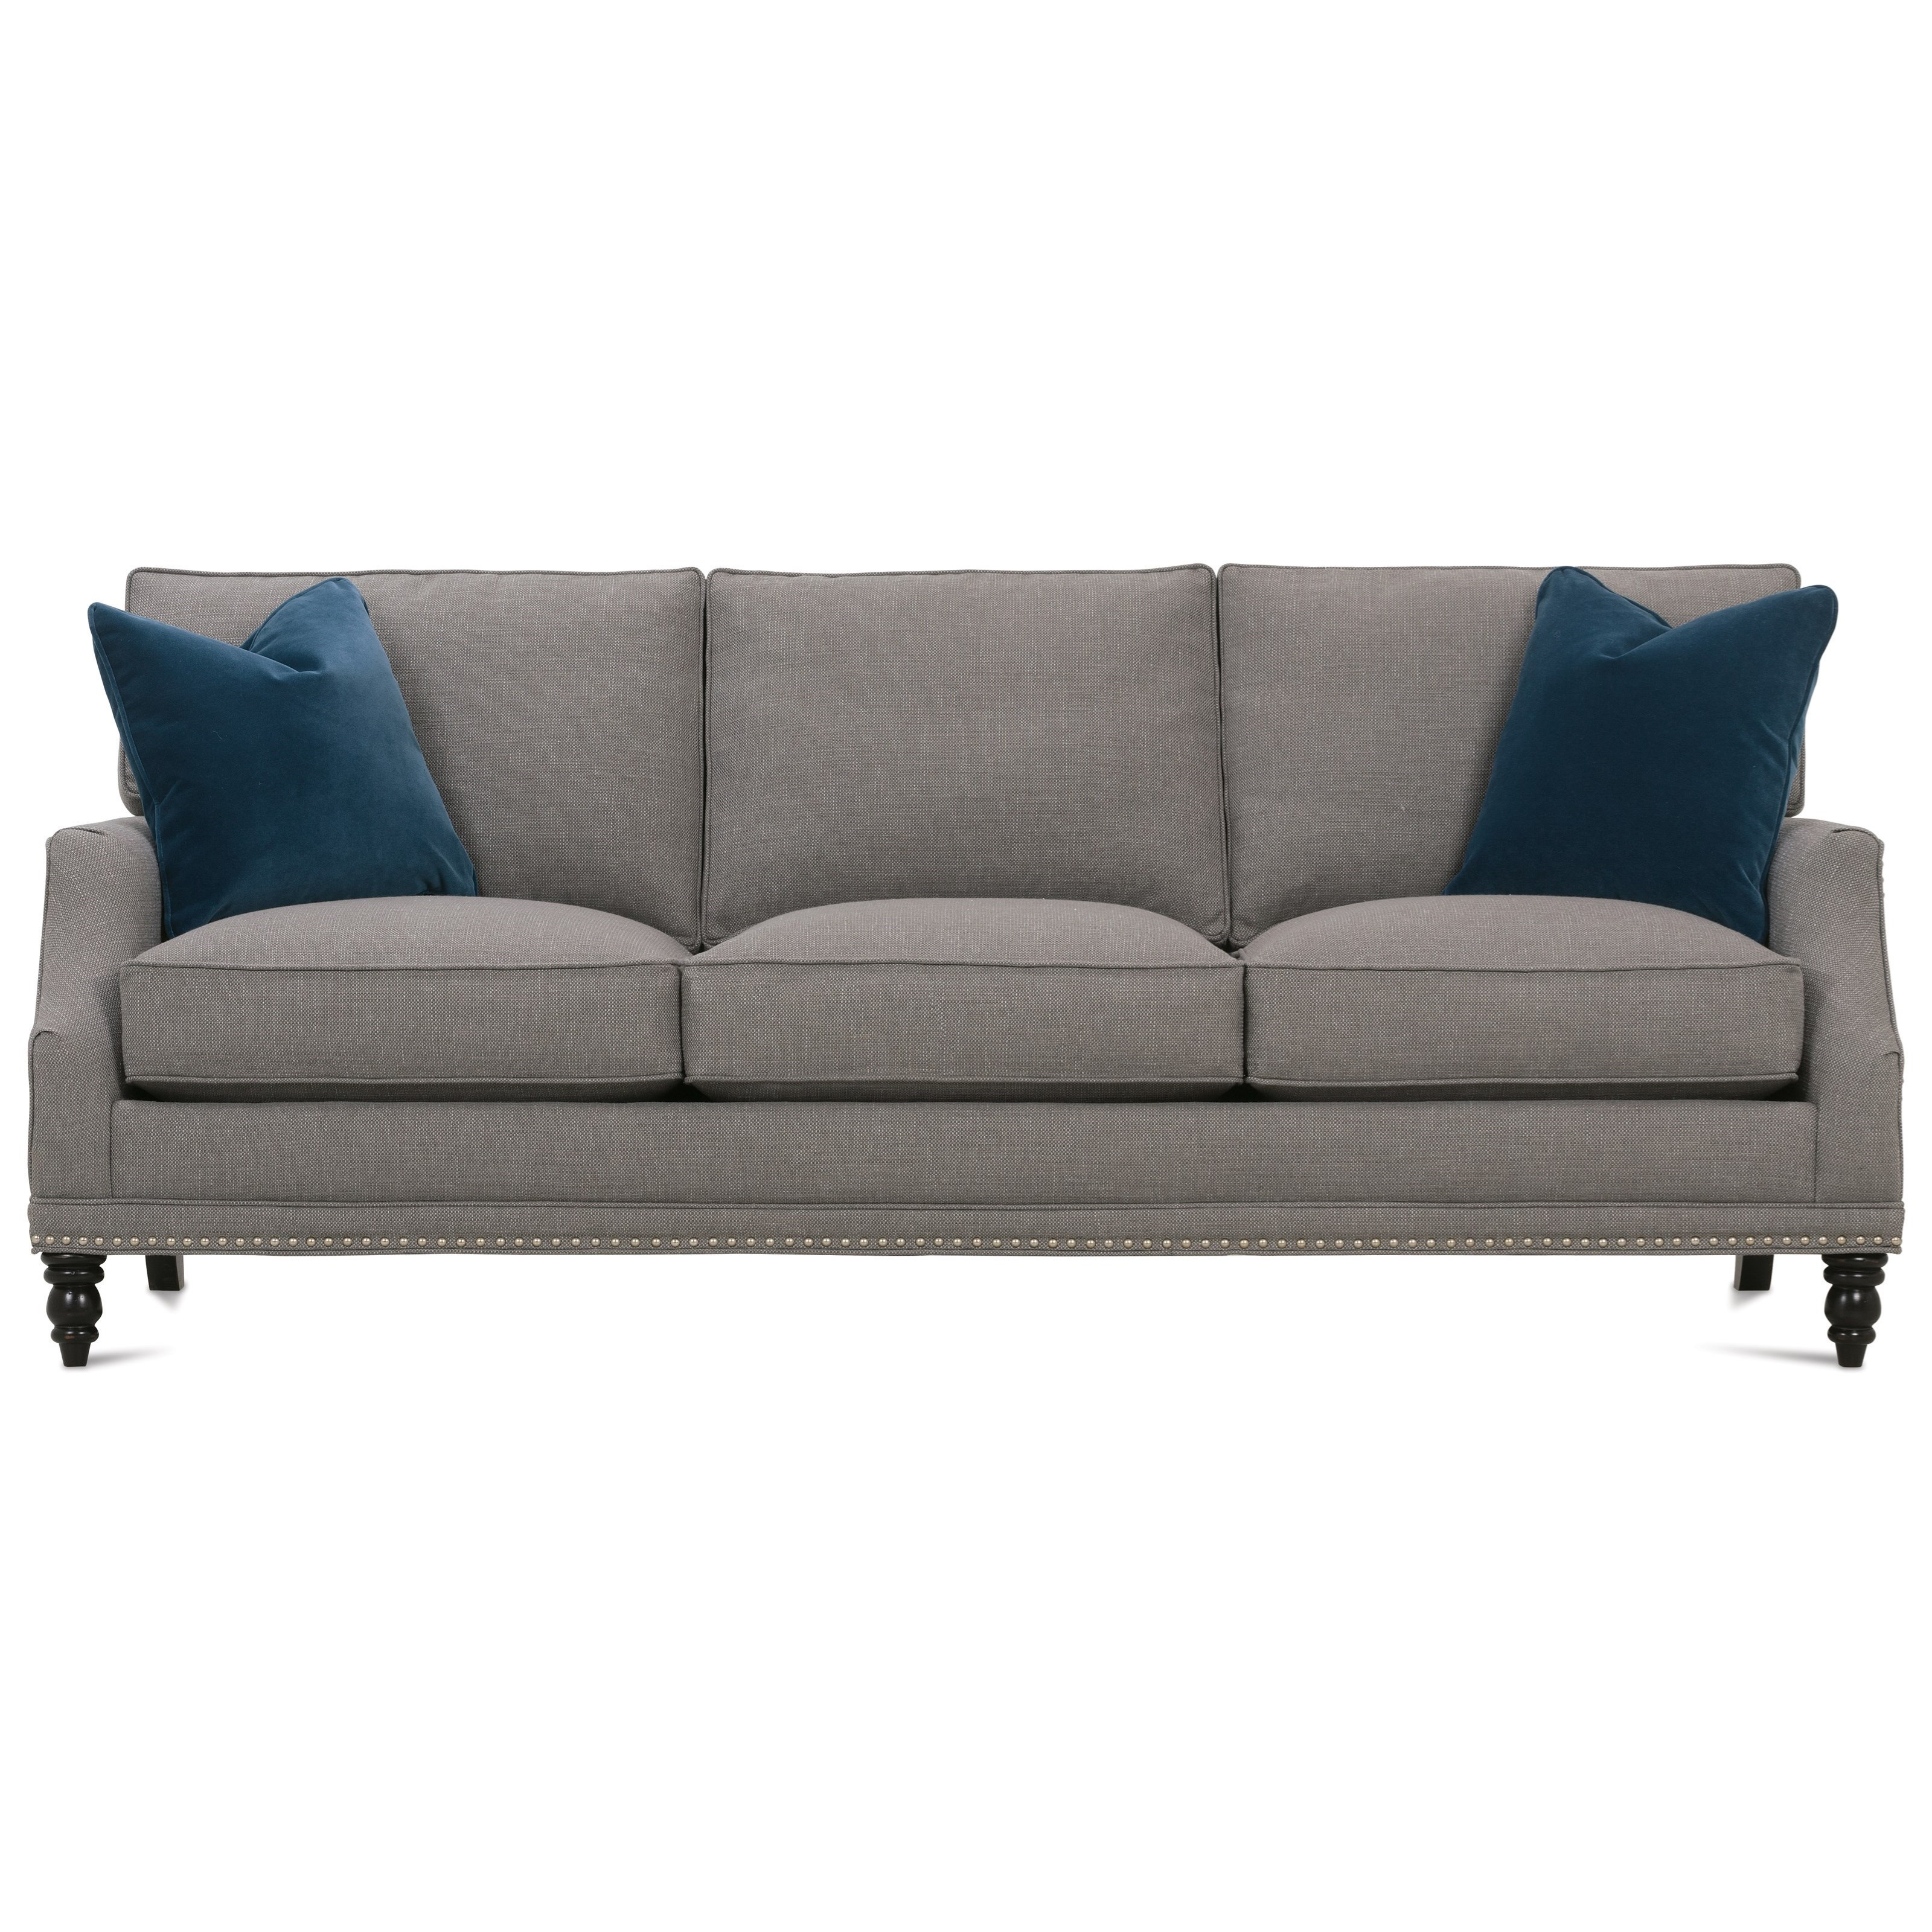 rowe my style ii customizable sofa with scooped arms turned legs rh belfortfurniture com sofa with legs uk sofa with leg rest